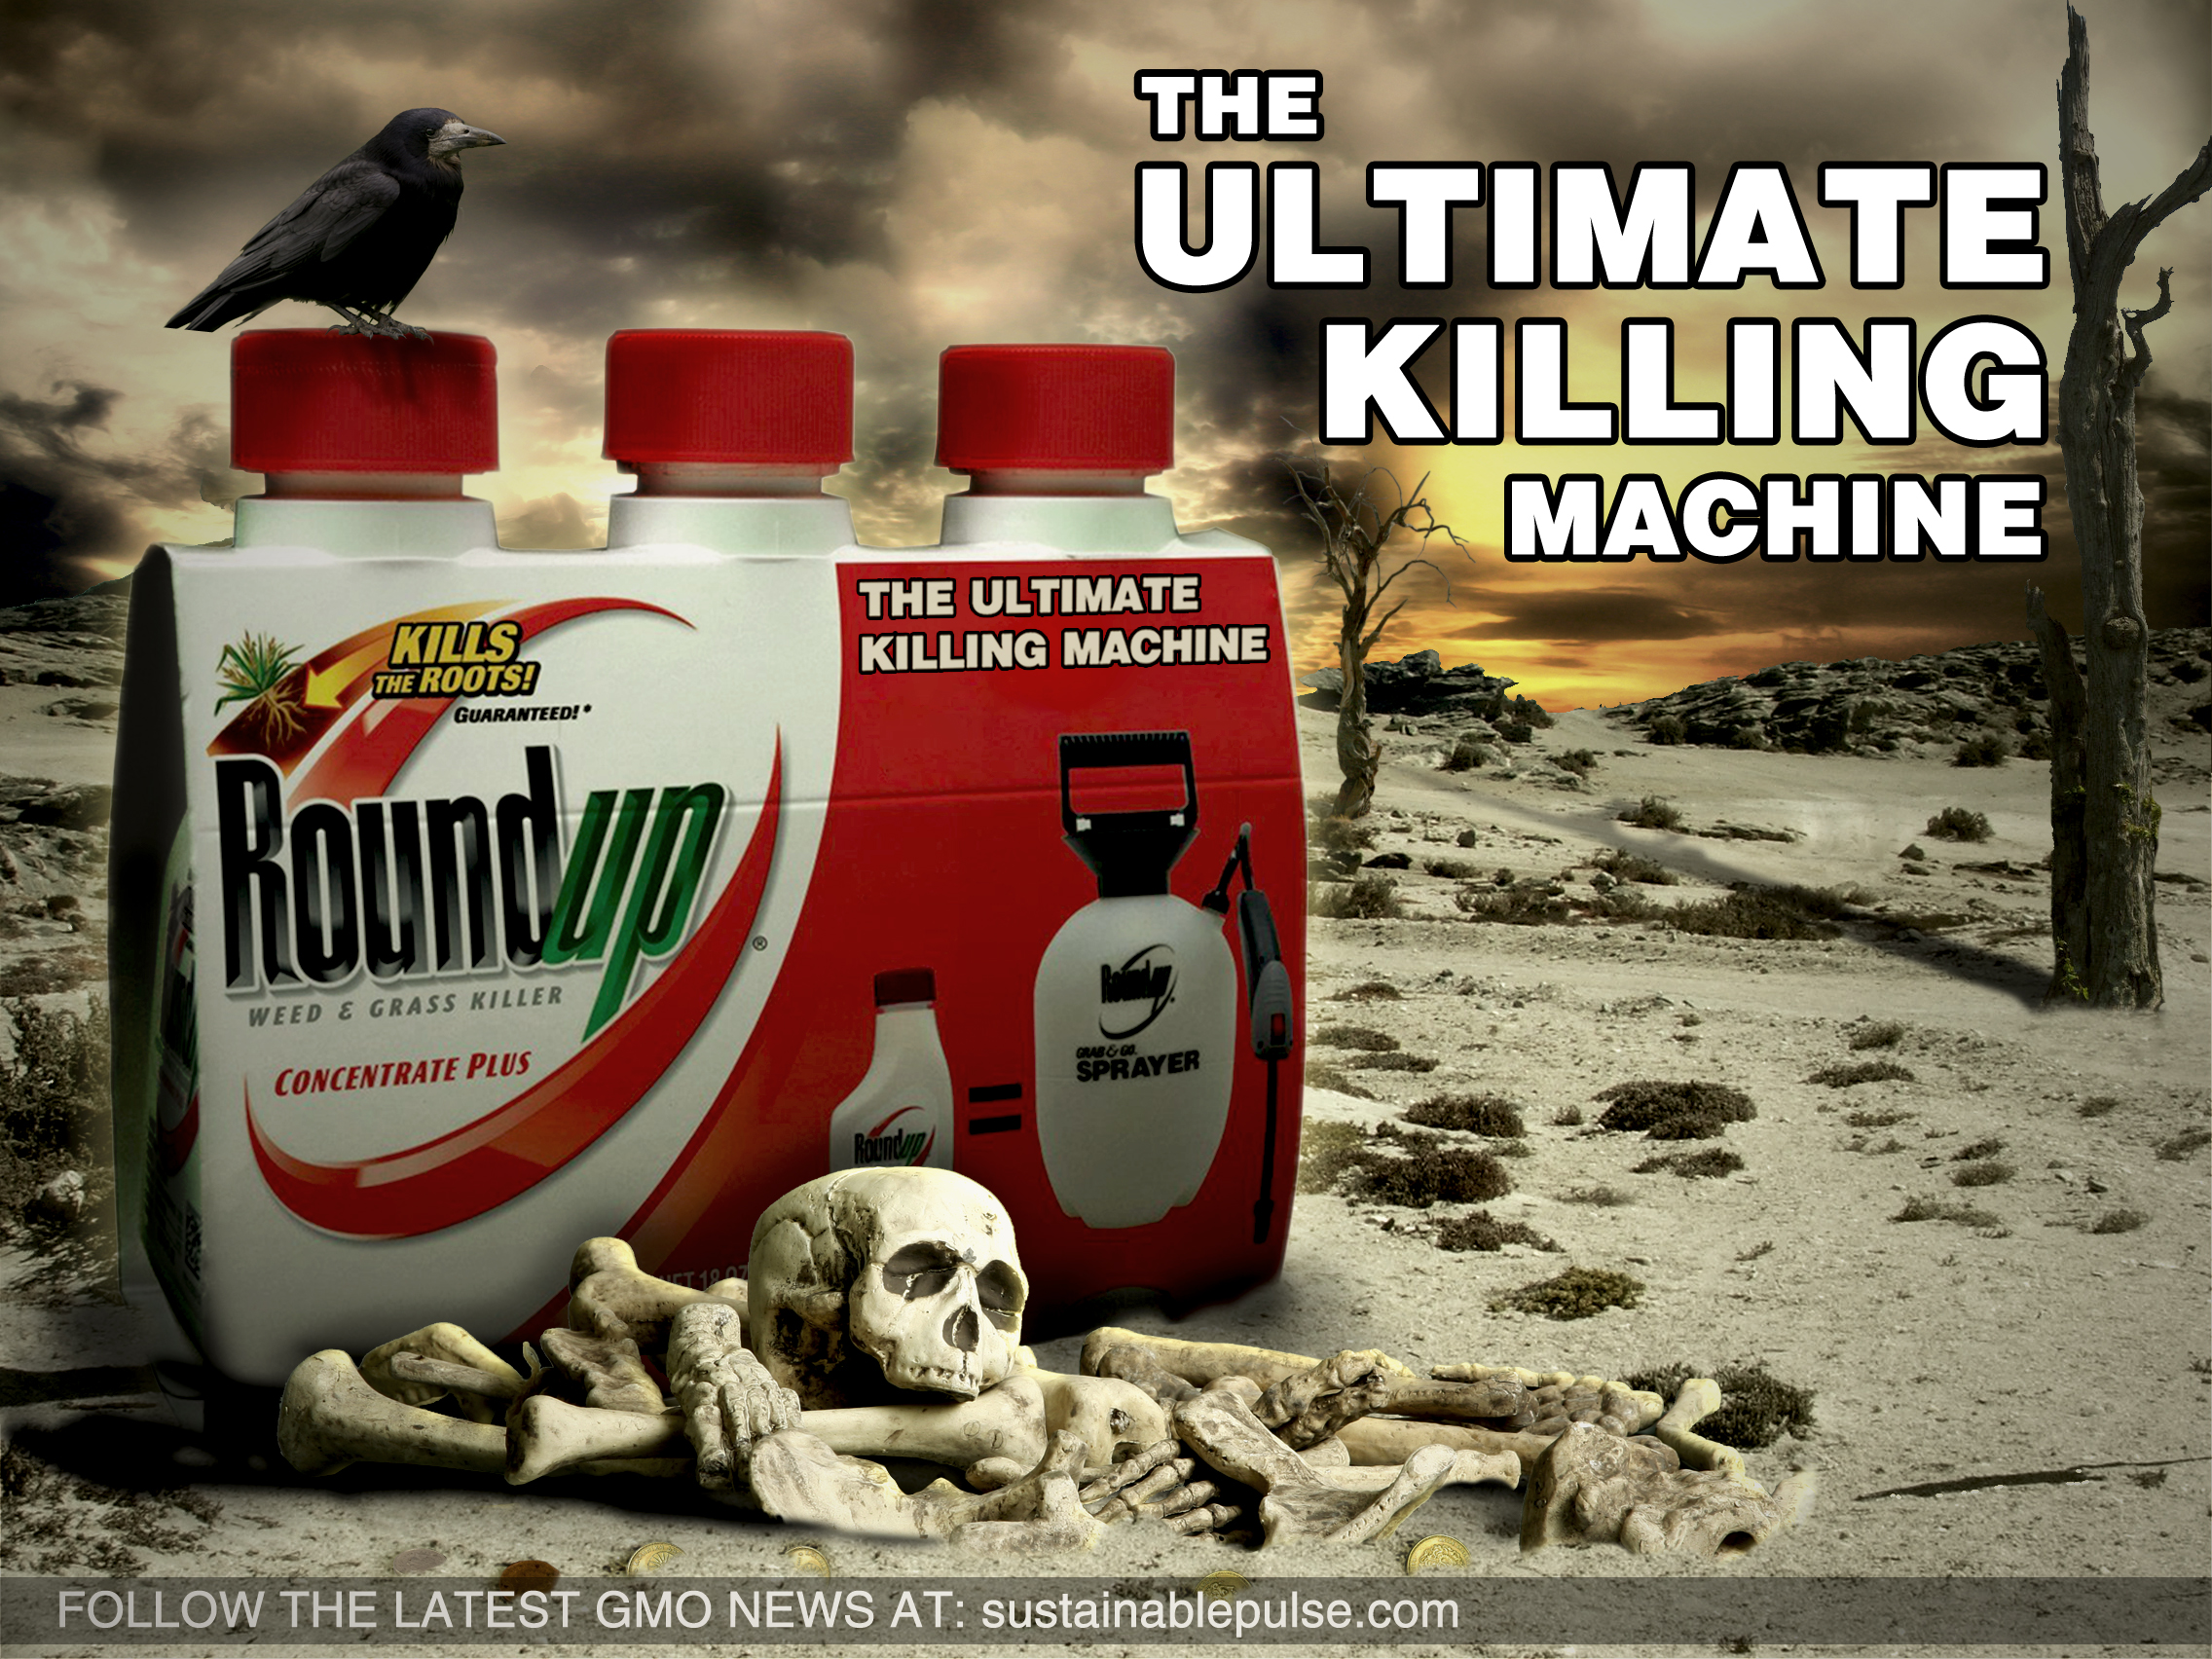 round-up-the-ultimate-killing-machine